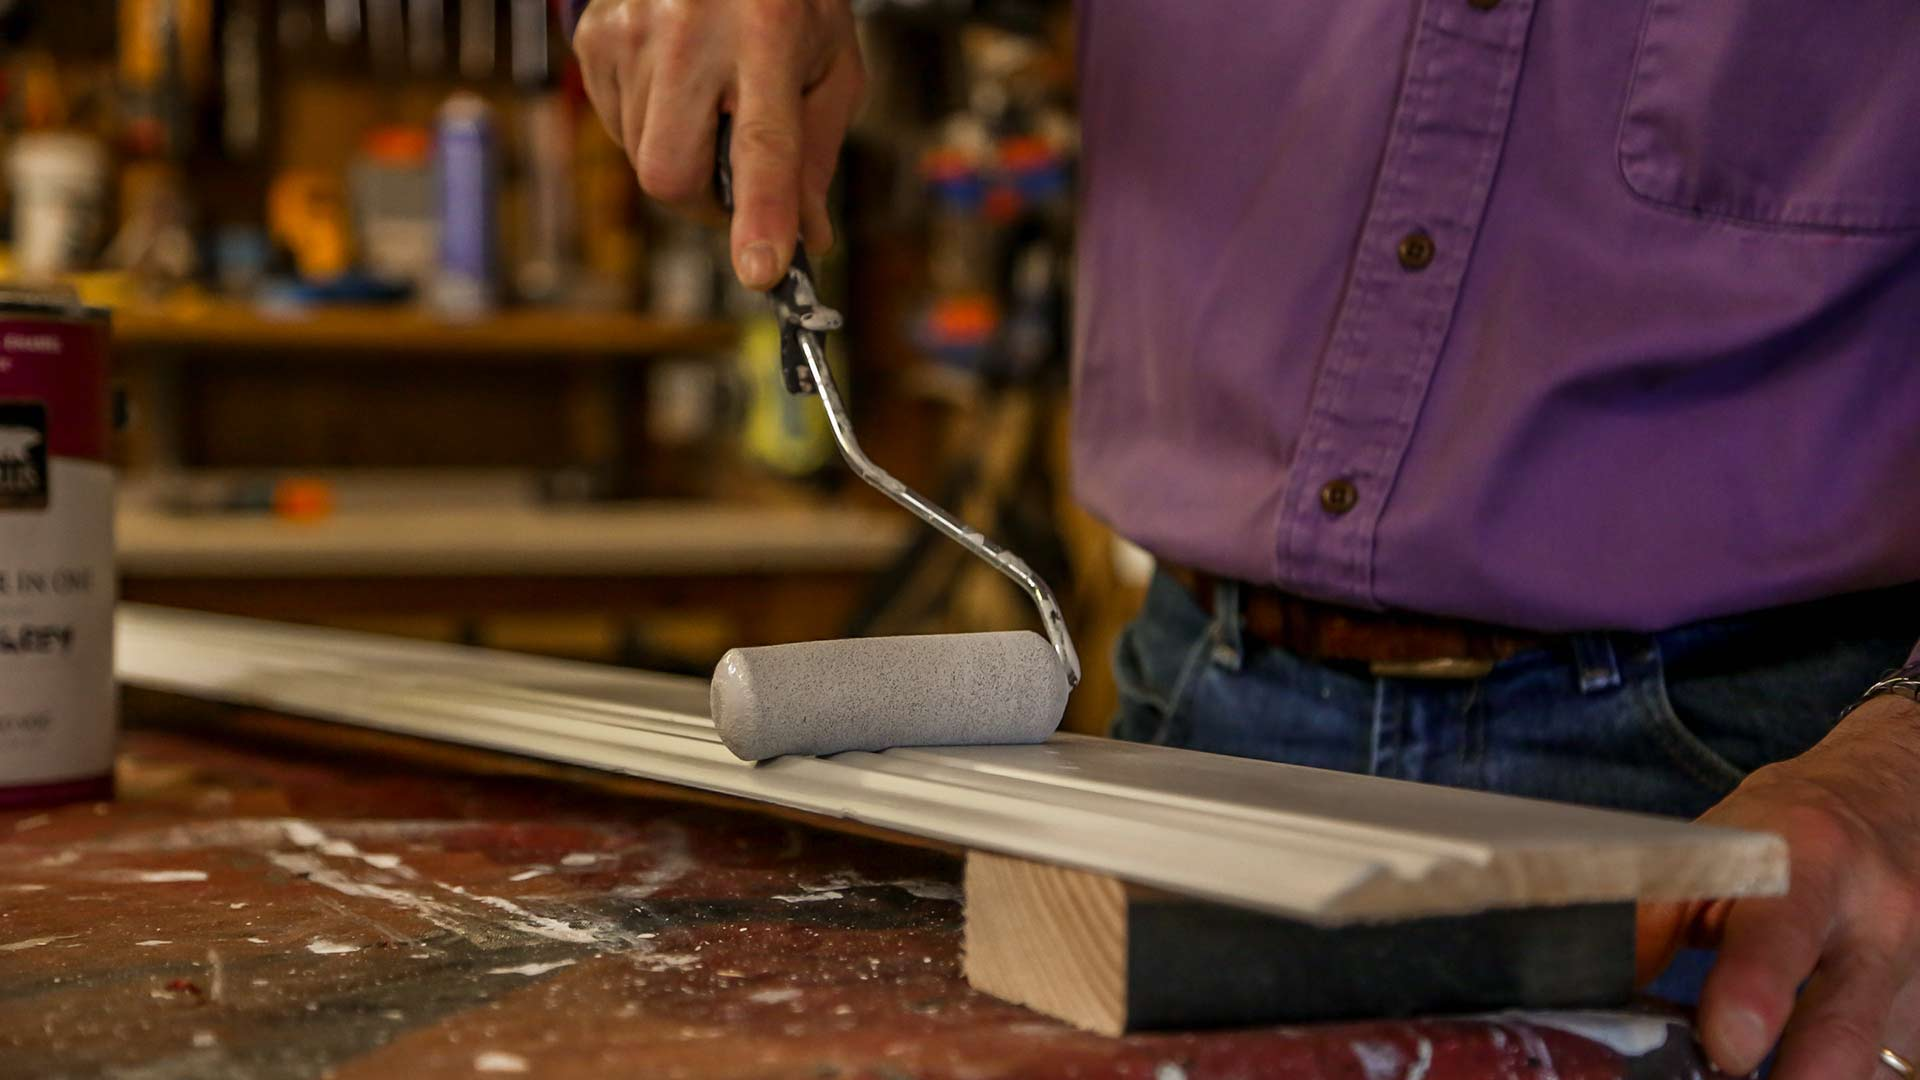 Painting wooden baseboard with a foam trim roller in a workshop.